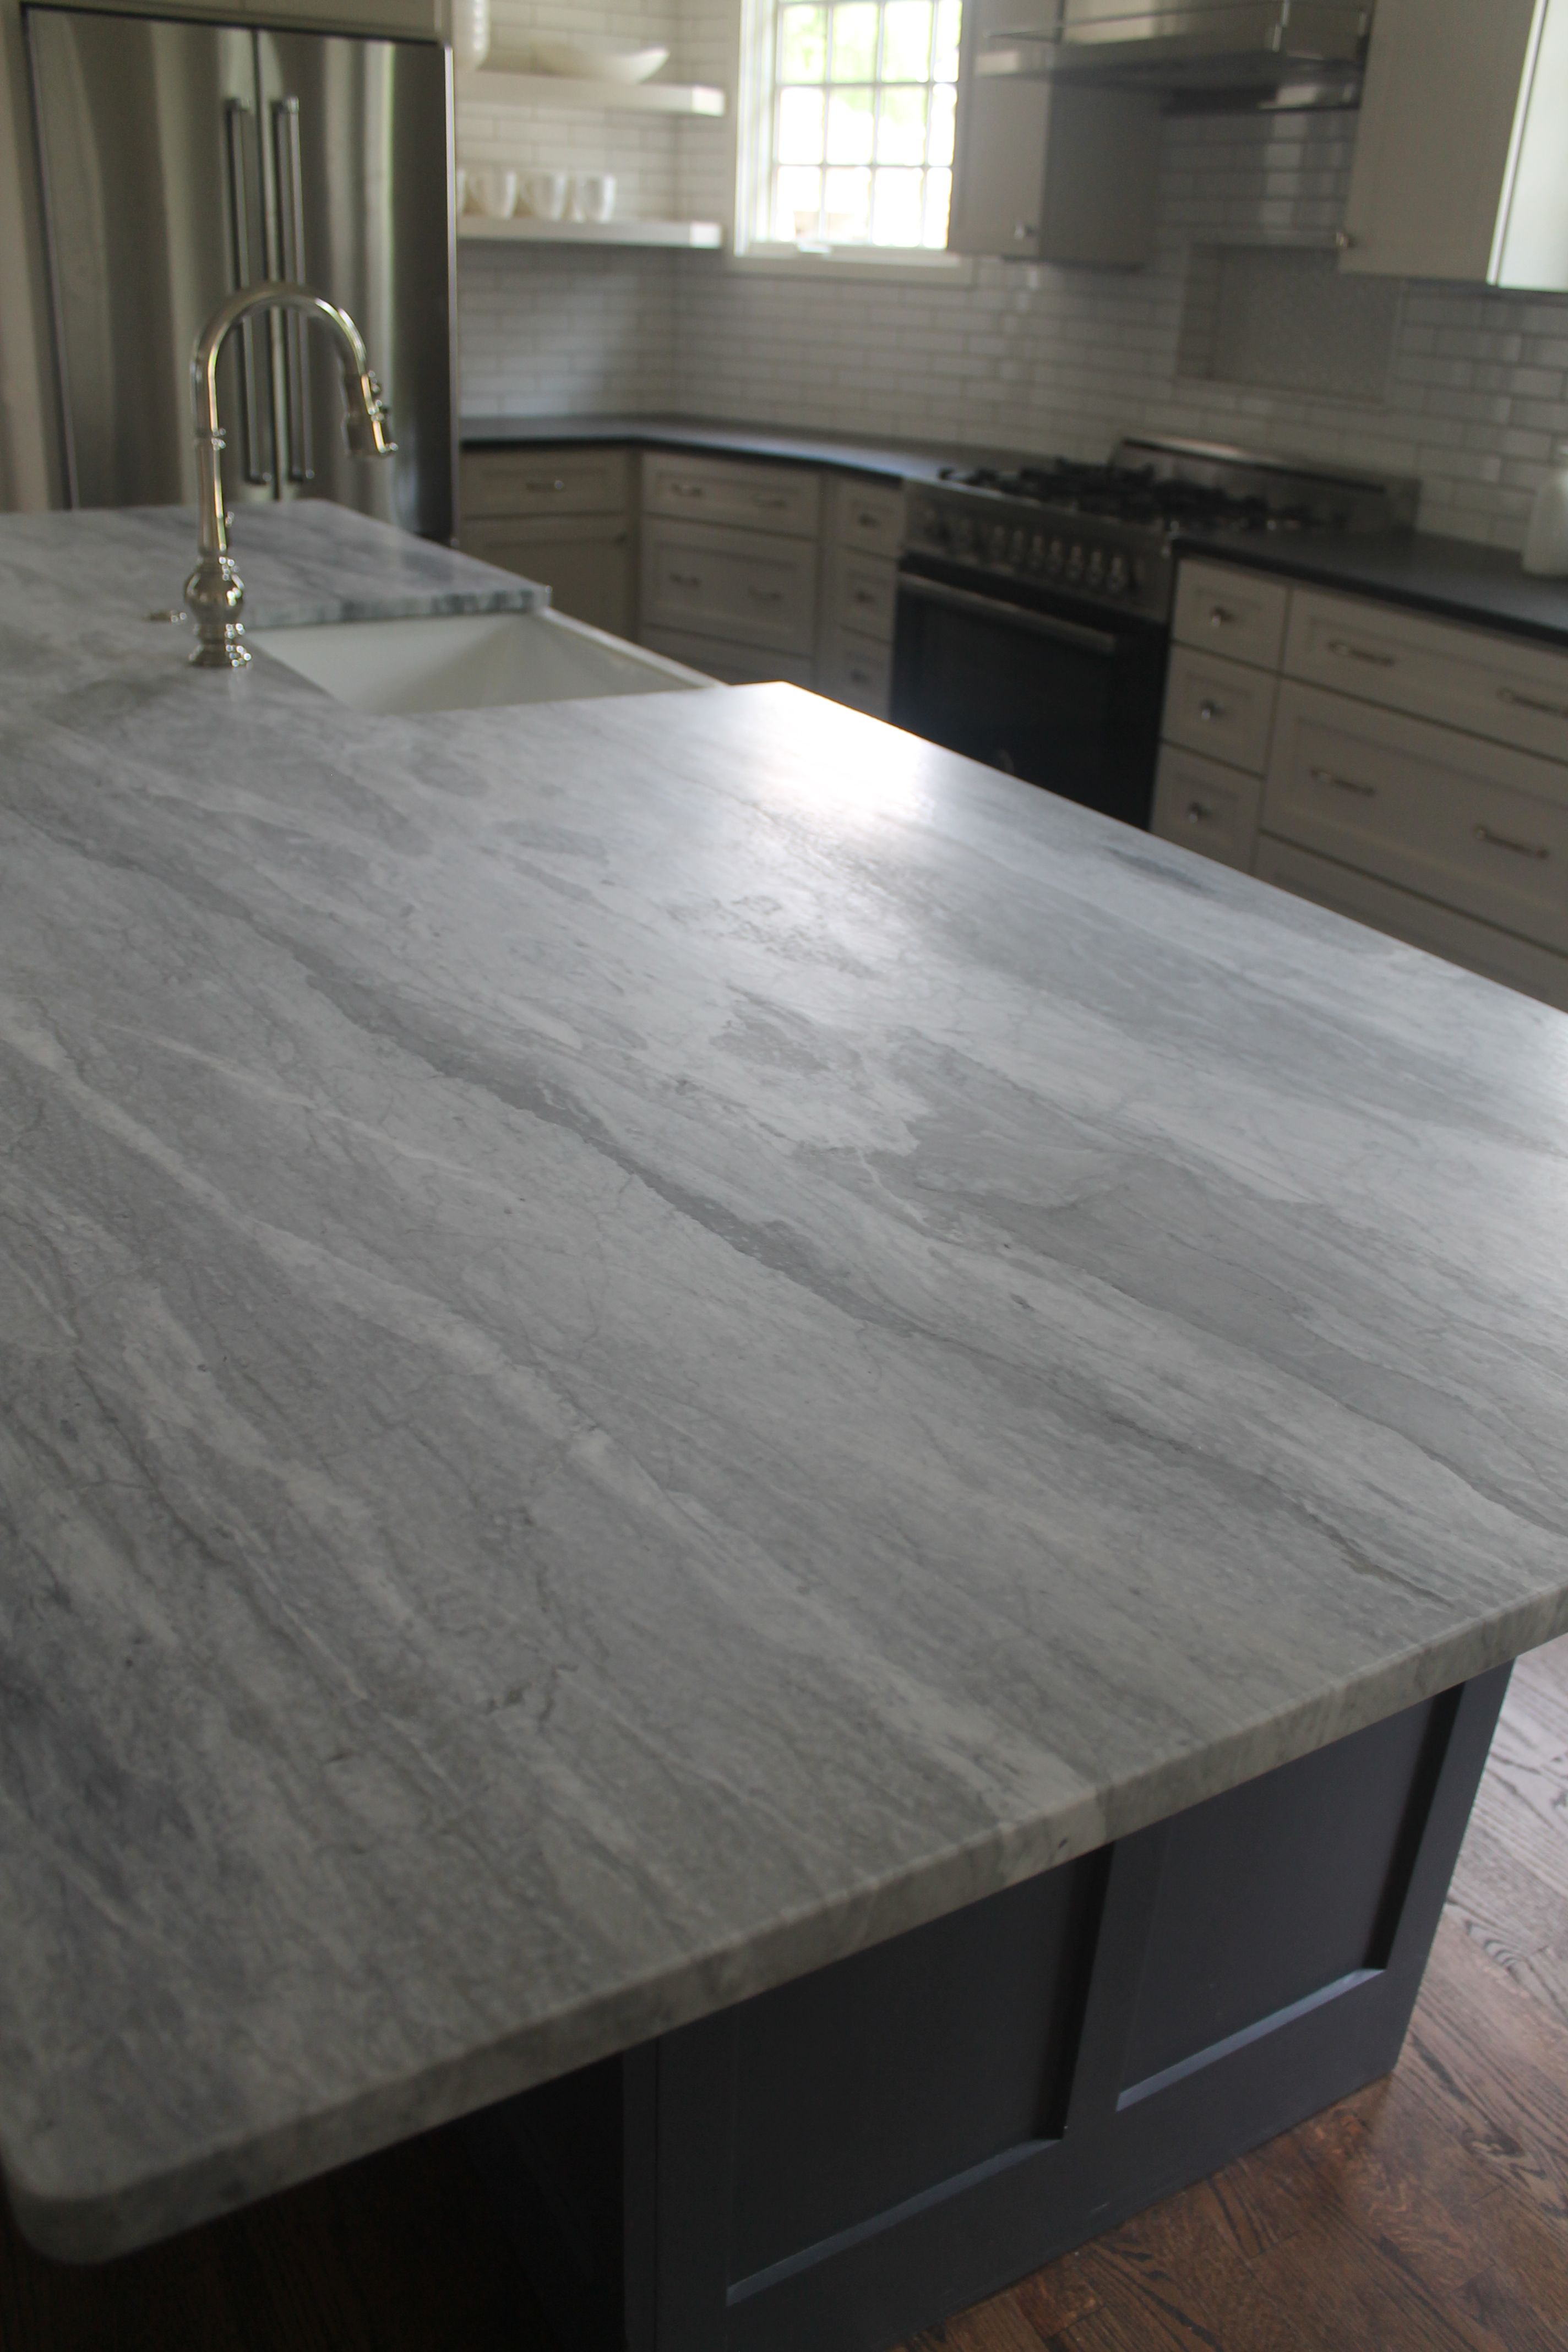 Bianco Pearla Leathered Marble Kitchen Remodeling Projects